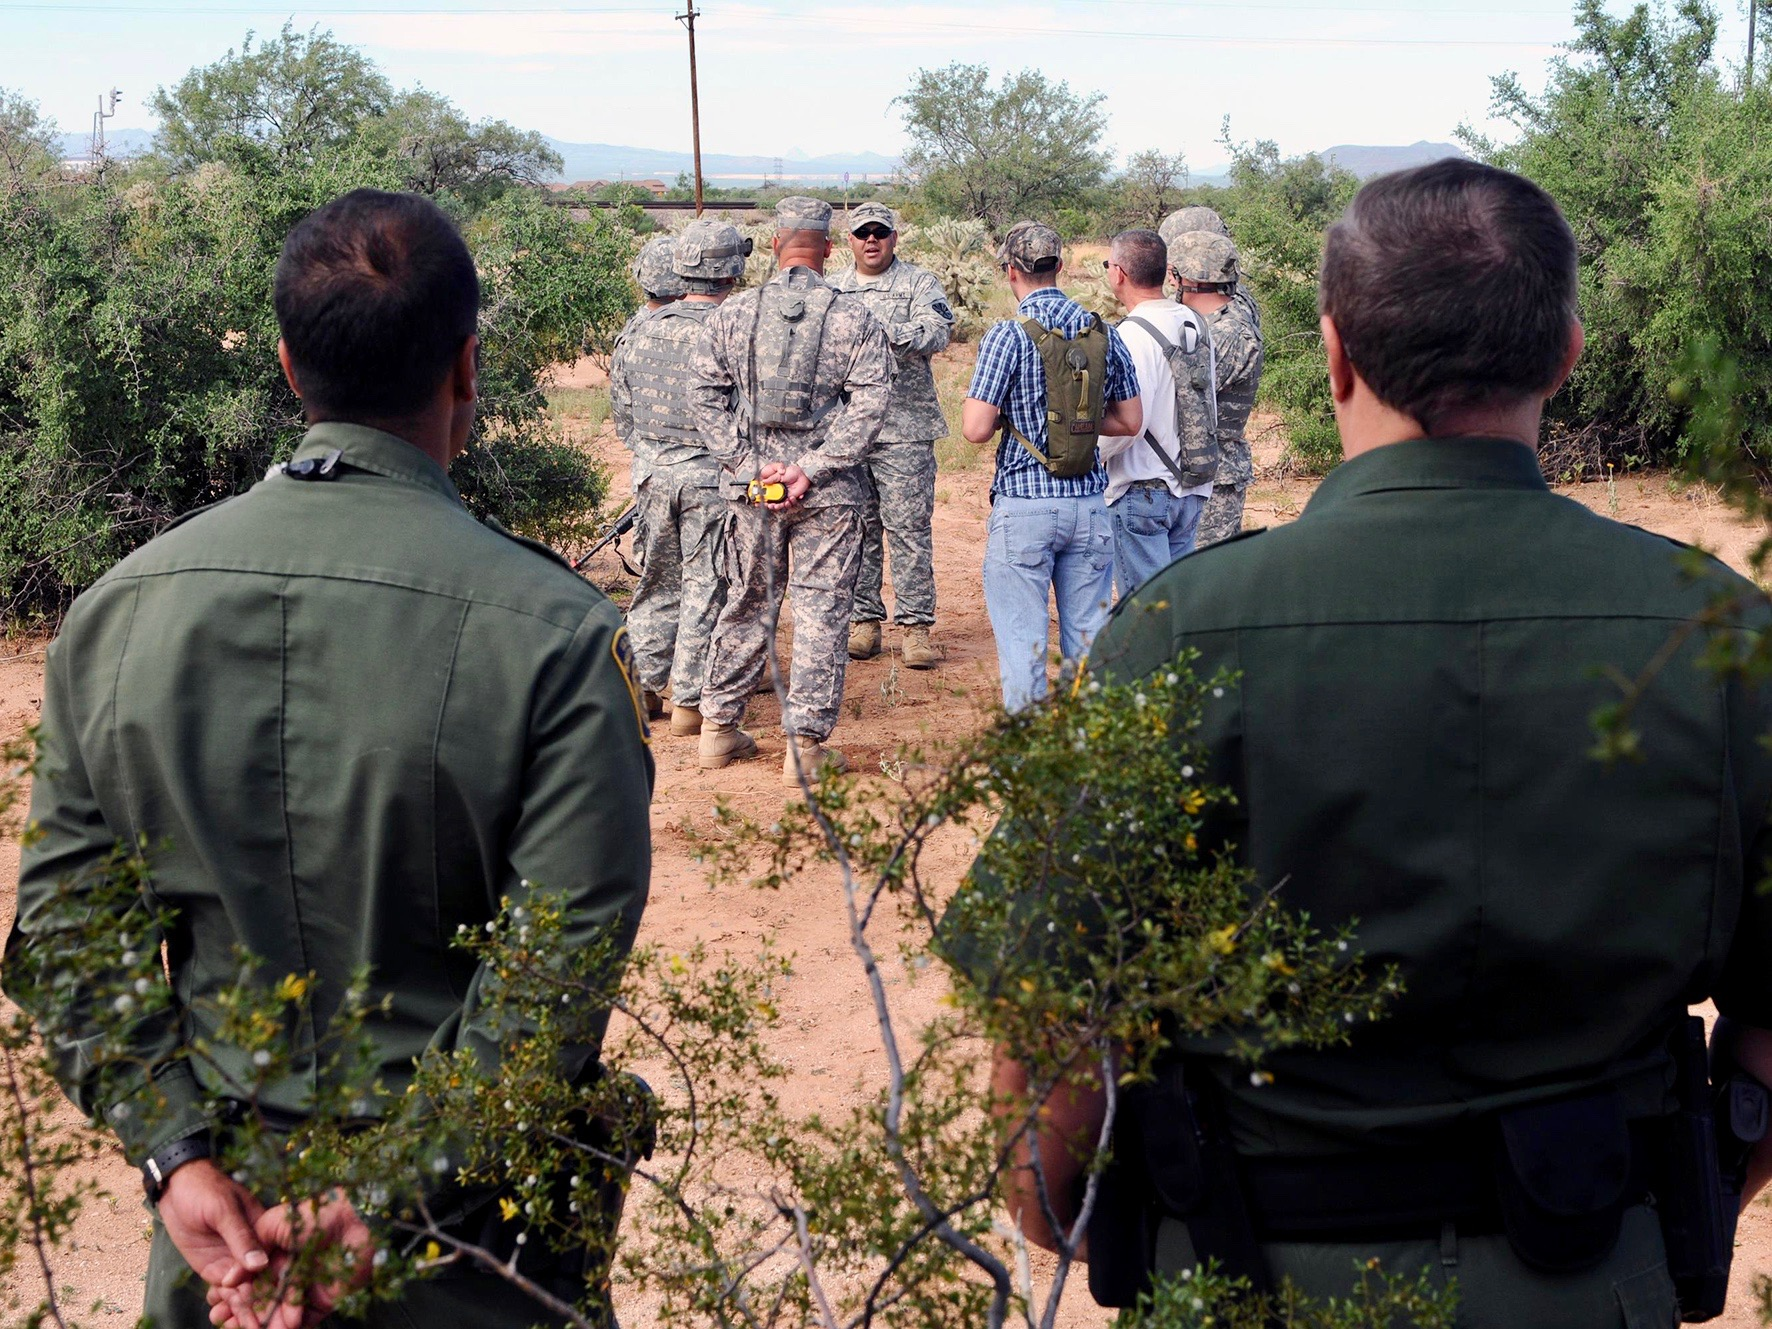 Cronkite News: Ranchers support Trump's plan for troops at U.S. border with Mexico